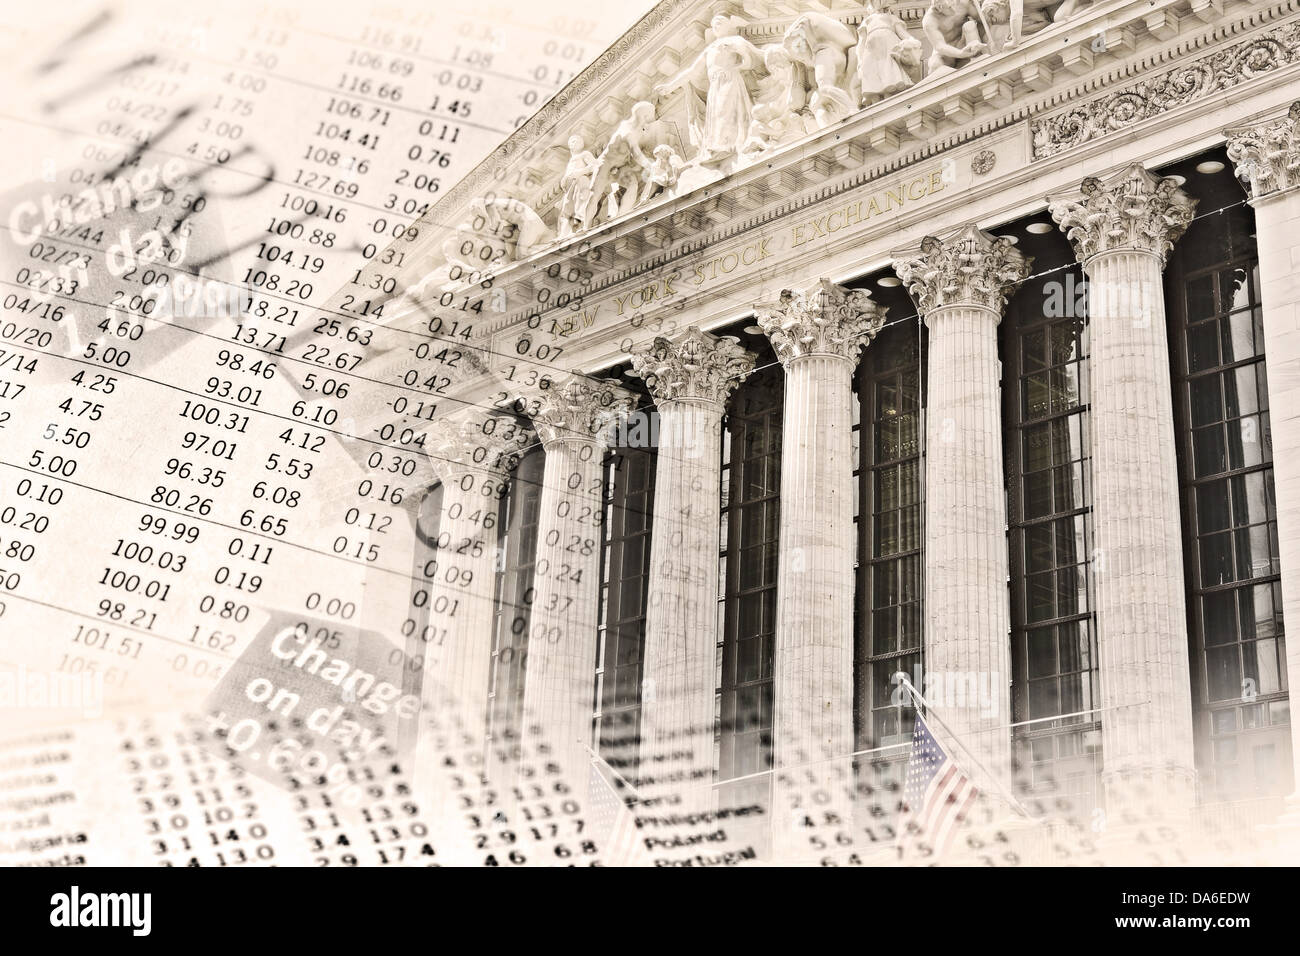 The building of the New York Stock Exchange and the stock price tables. - Stock Image